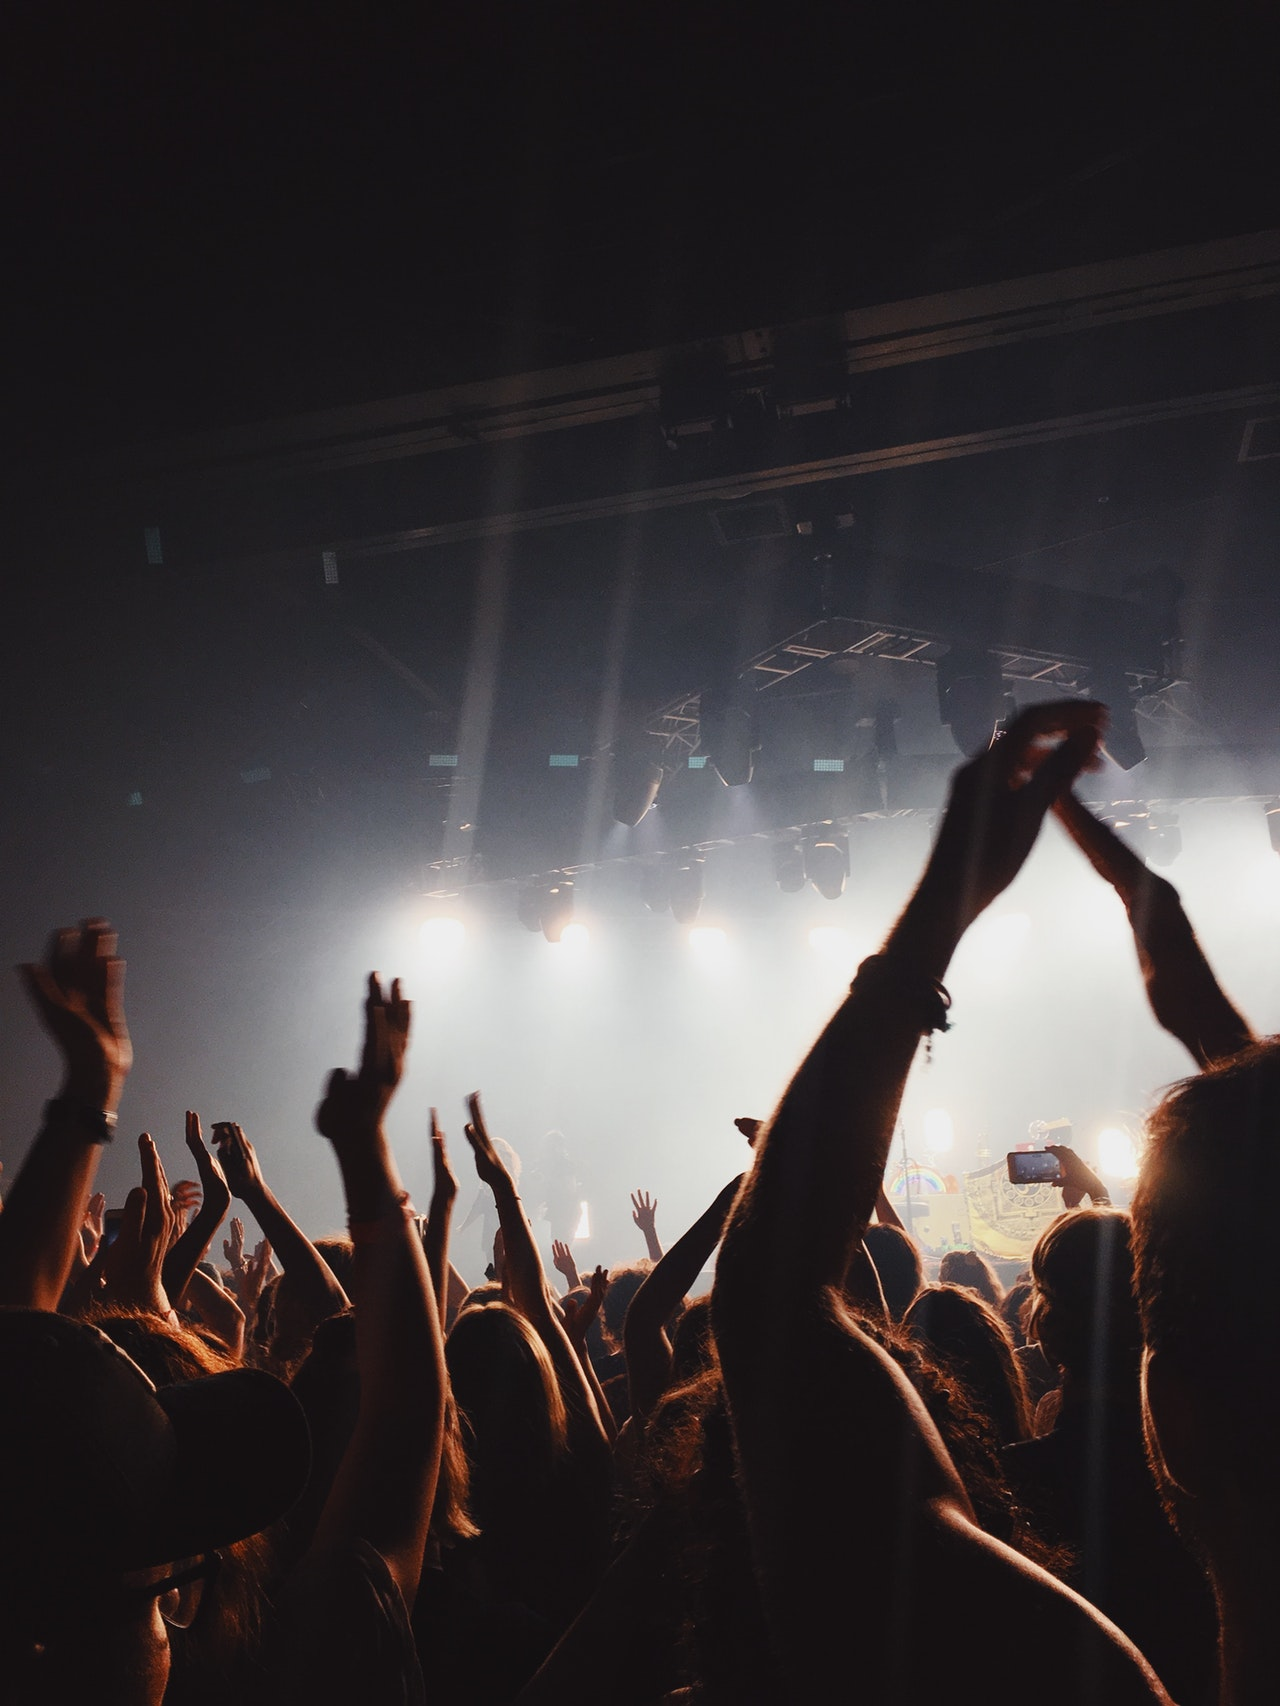 Fans raise their hands in air at a music venue.